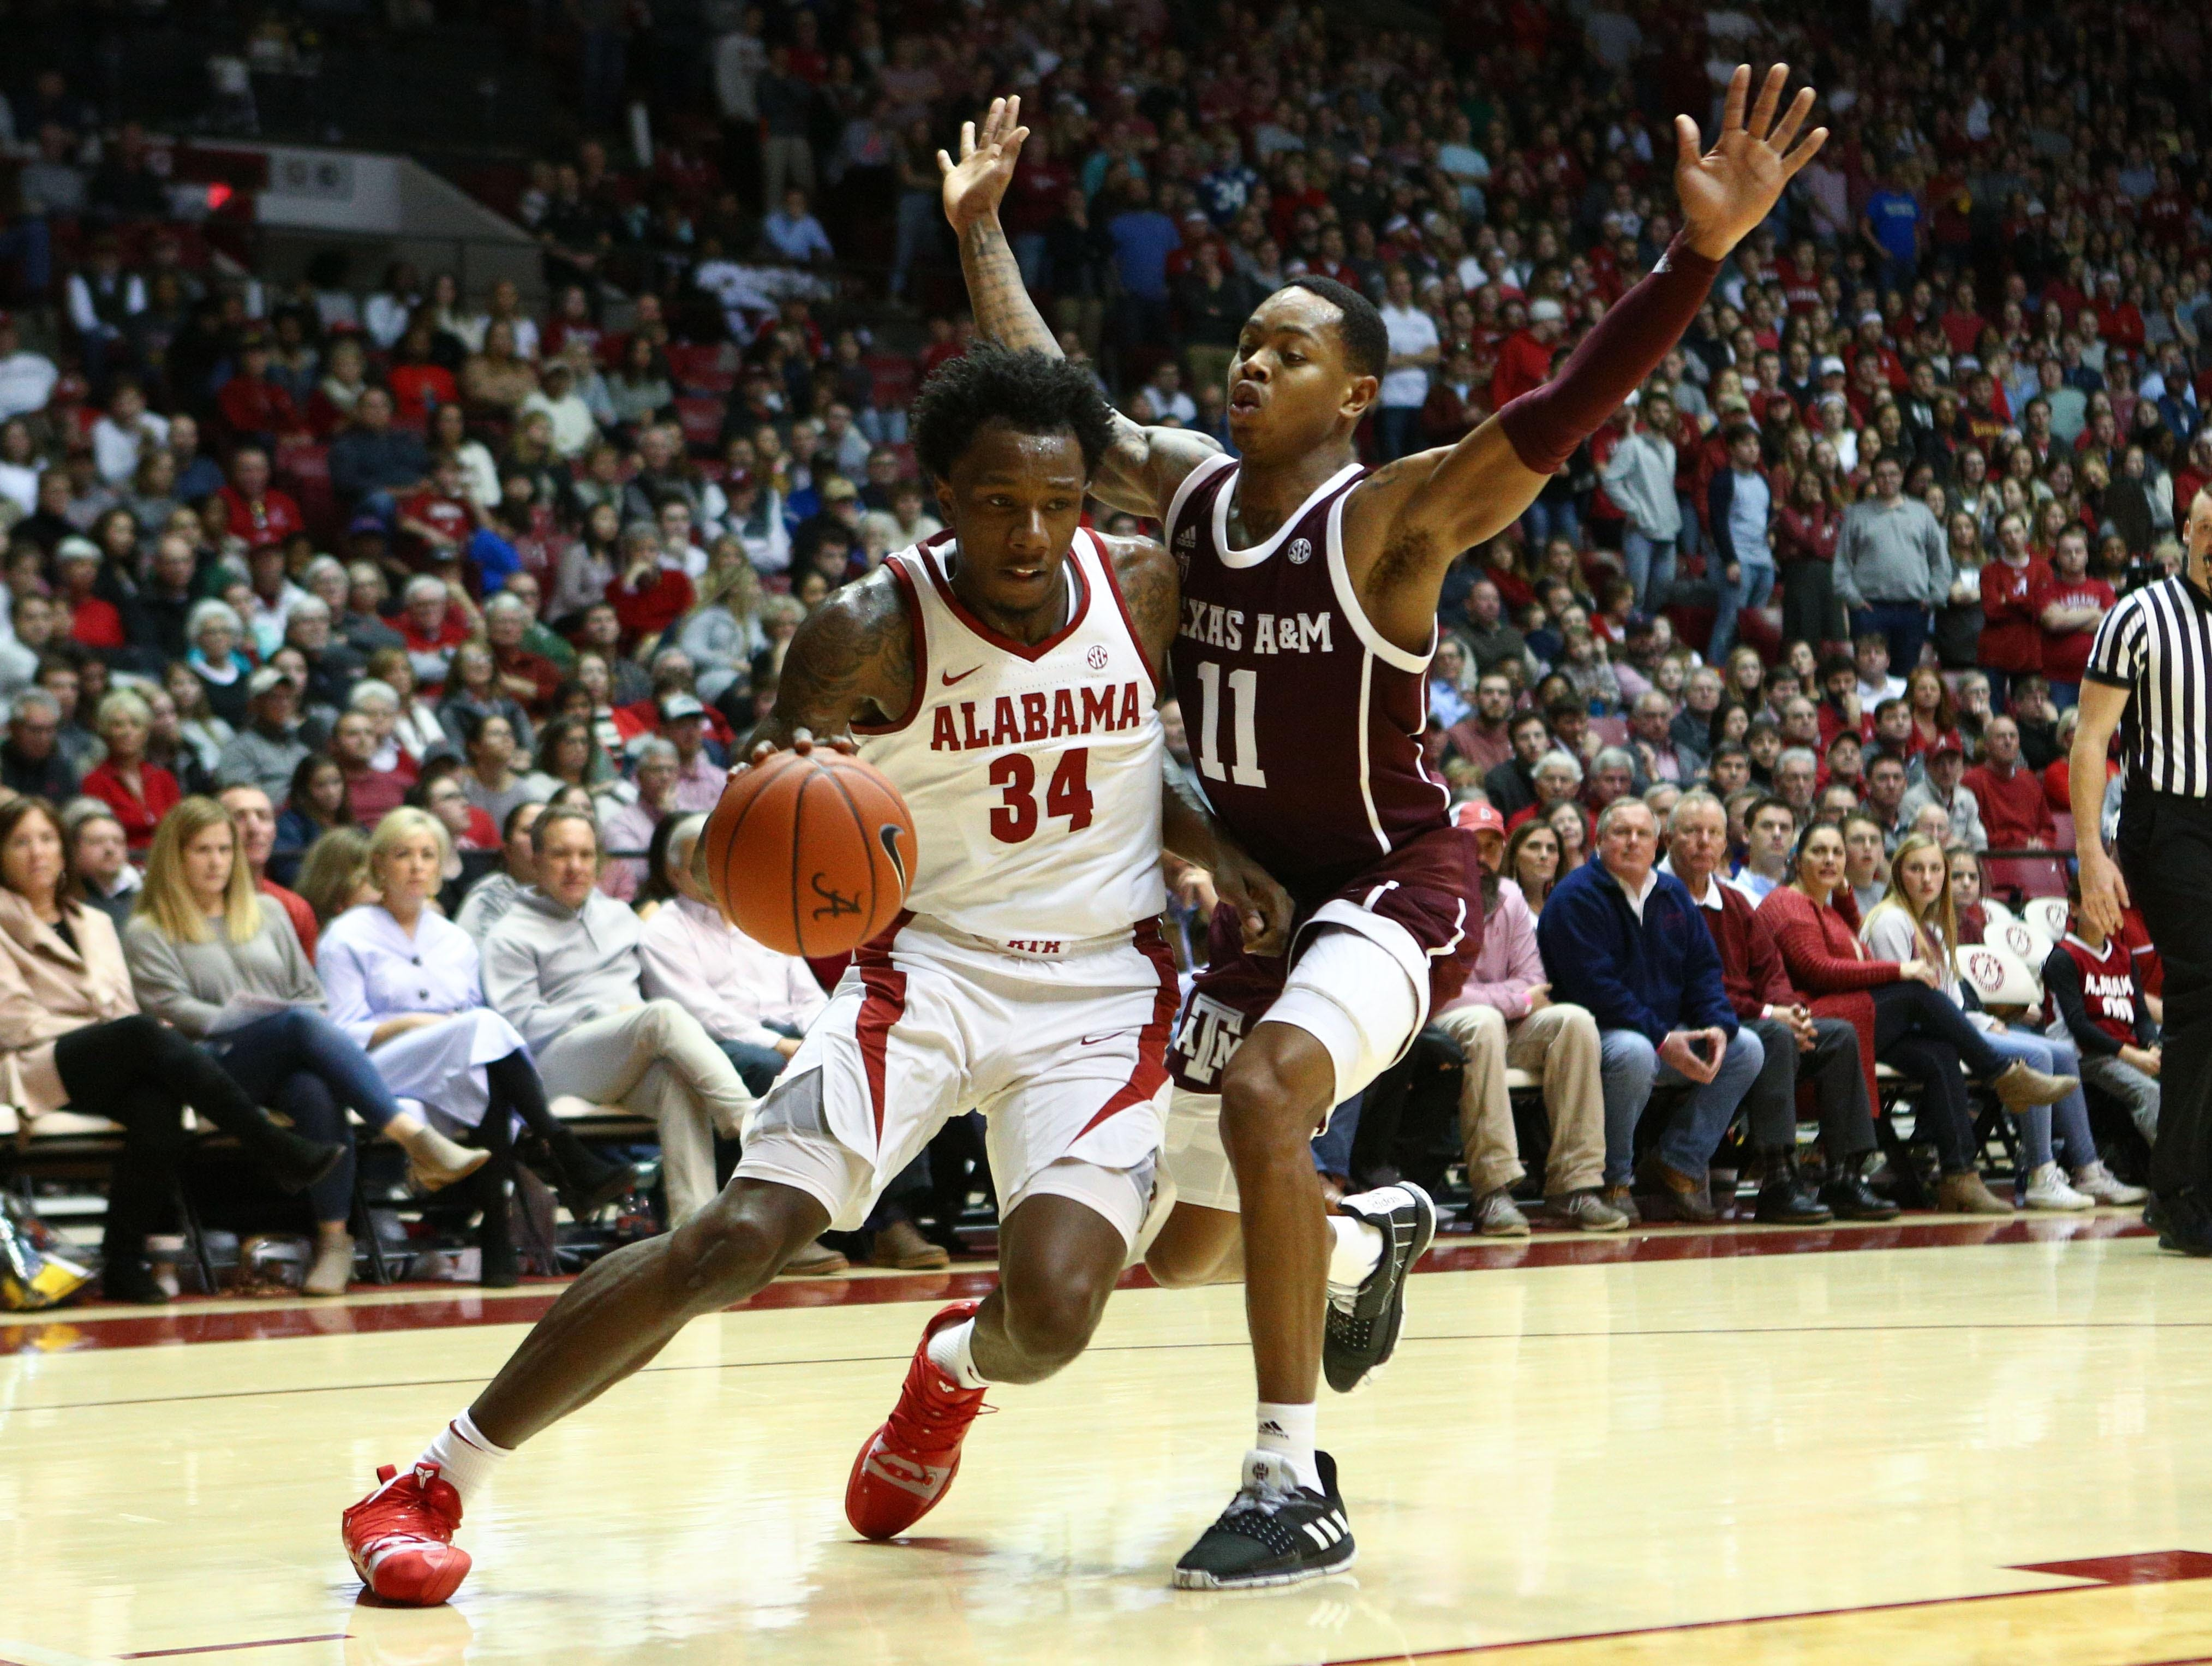 Jan 12, 2019; Tuscaloosa, AL, USA; Alabama Crimson Tide guard Tevin Mack (34) drives to the basket against Texas A&M Aggies guard Wendell Mitchell (11) during the second half at Coleman Coliseum. Mandatory Credit: Marvin Gentry-USA TODAY Sports